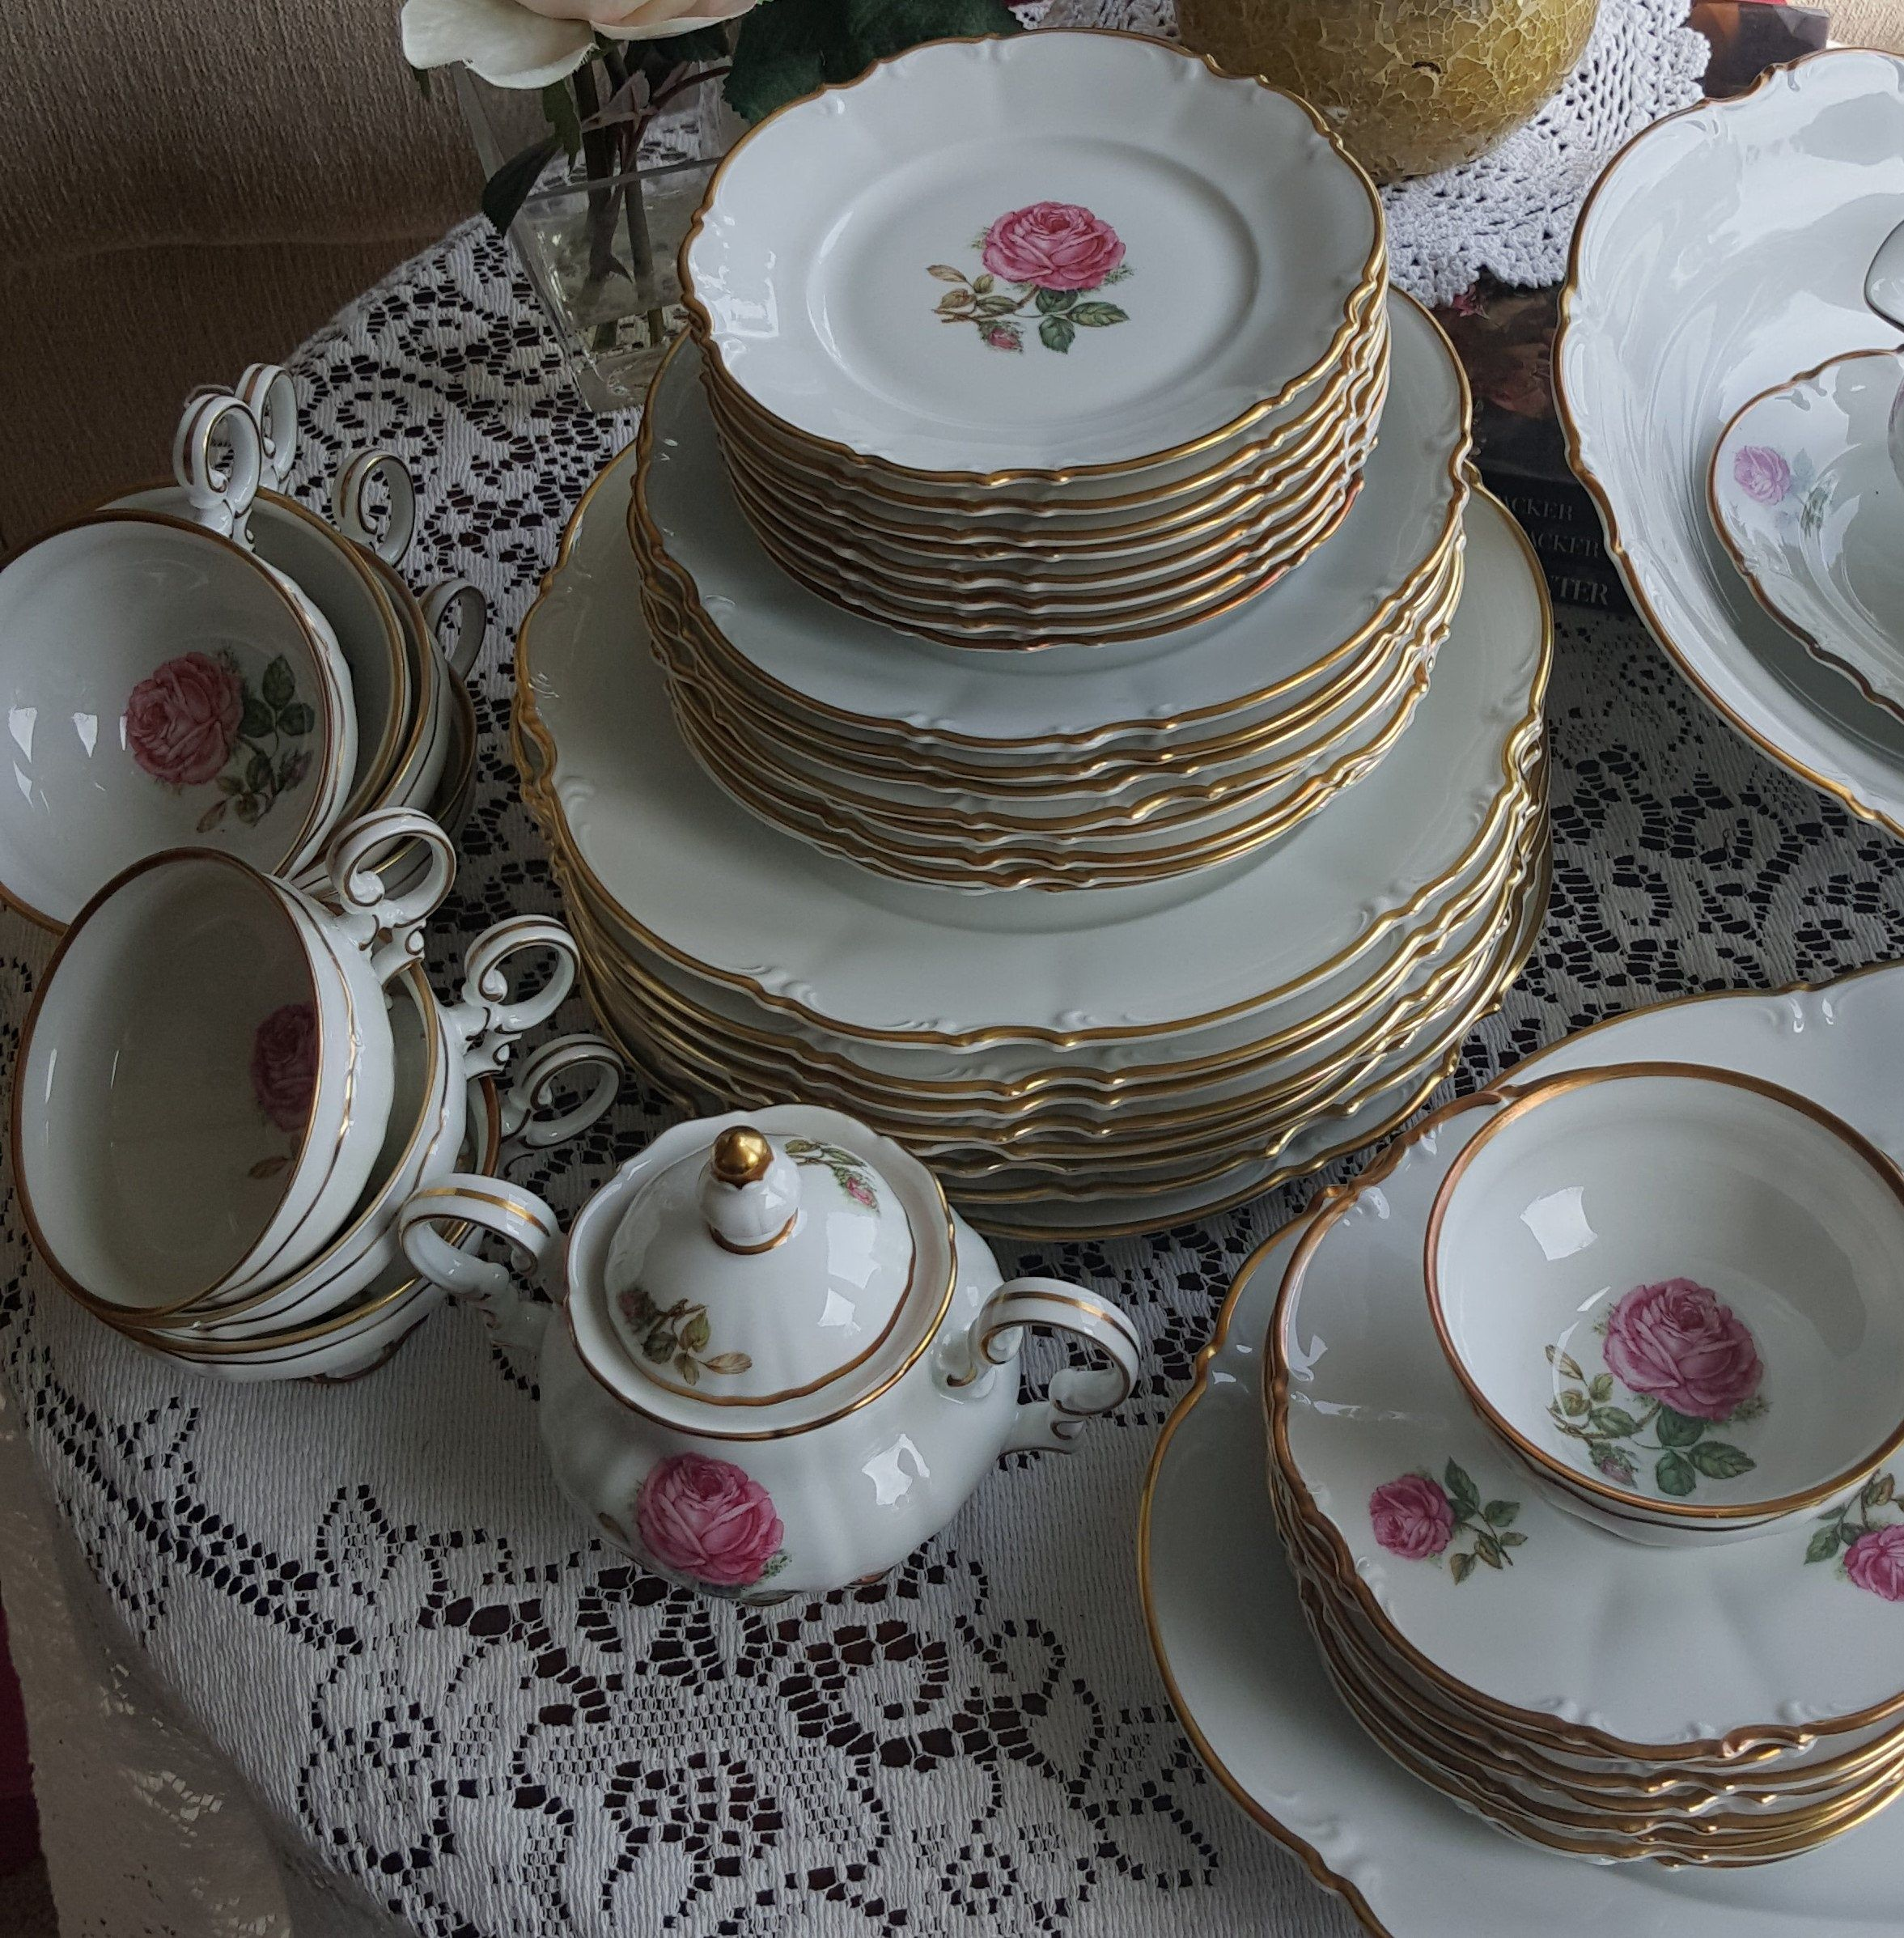 Wedding Gift China: Hutschenreuther Selb Dundee 45 Piece Fine China Set Sylvia